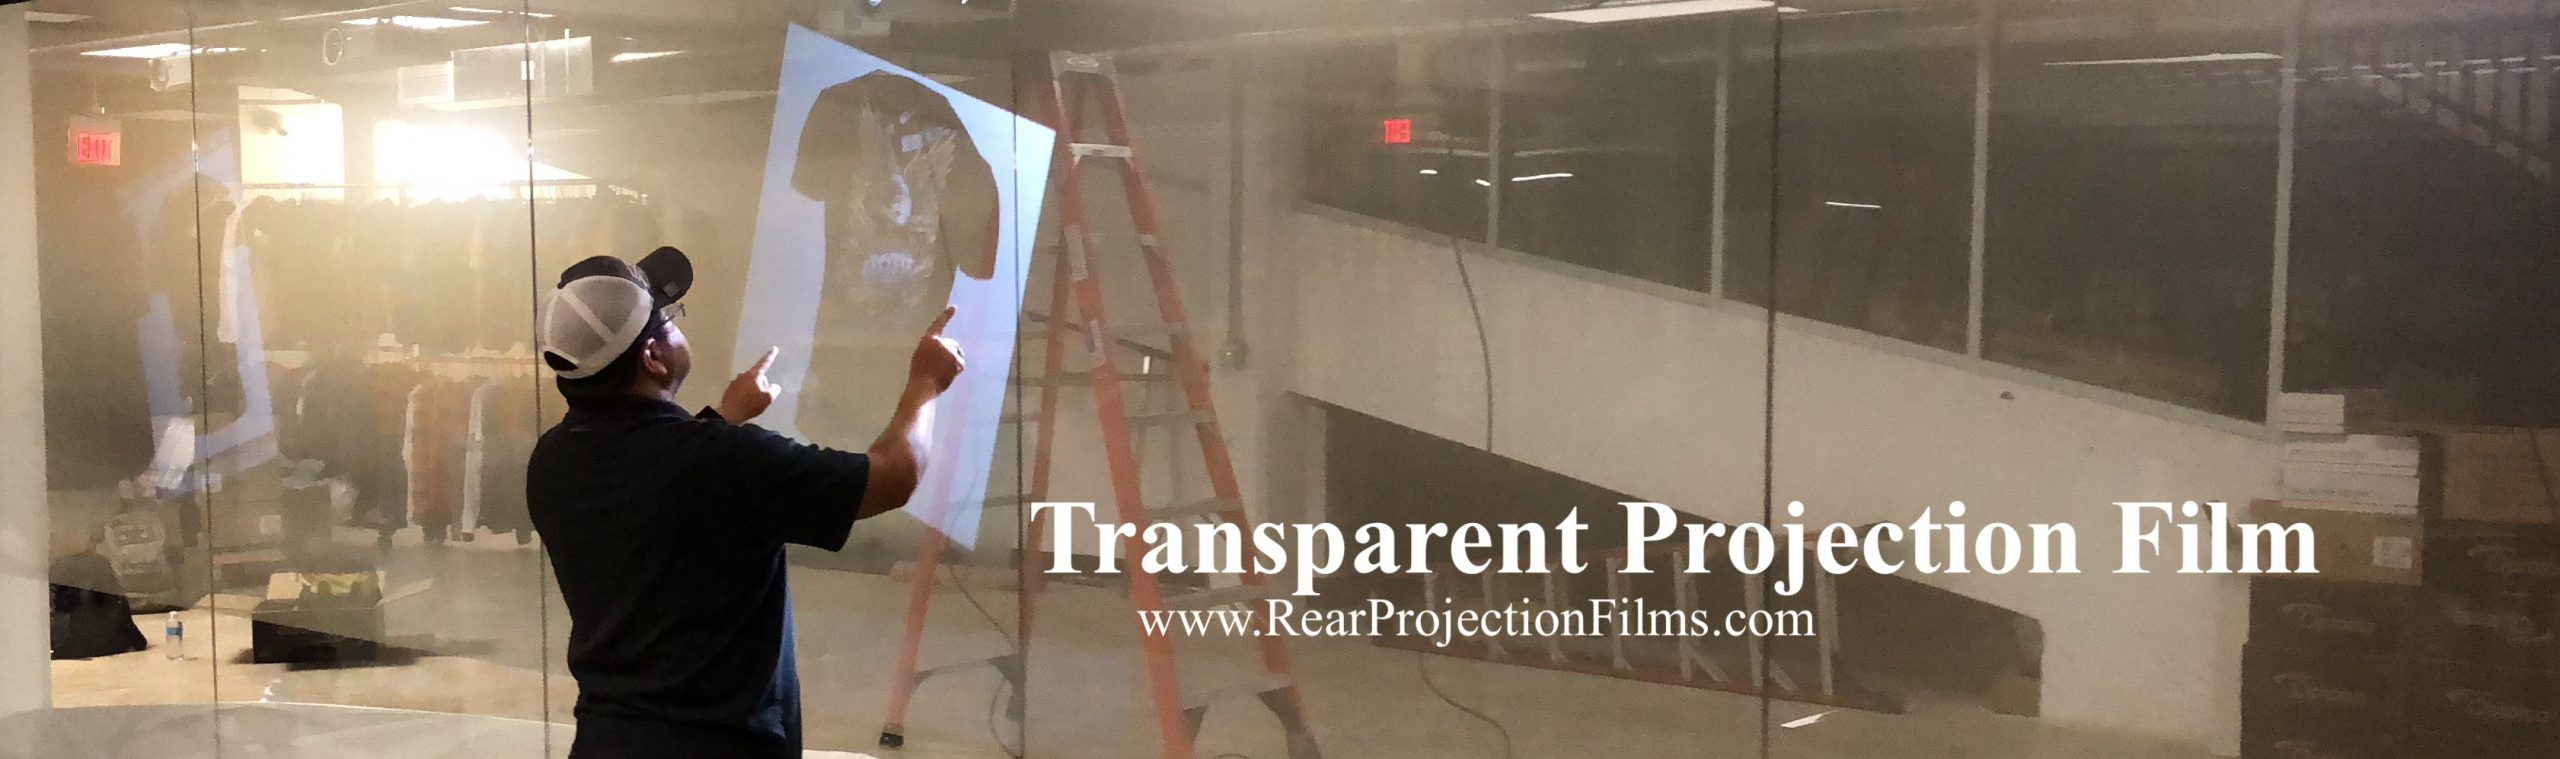 Transparent Projection Film